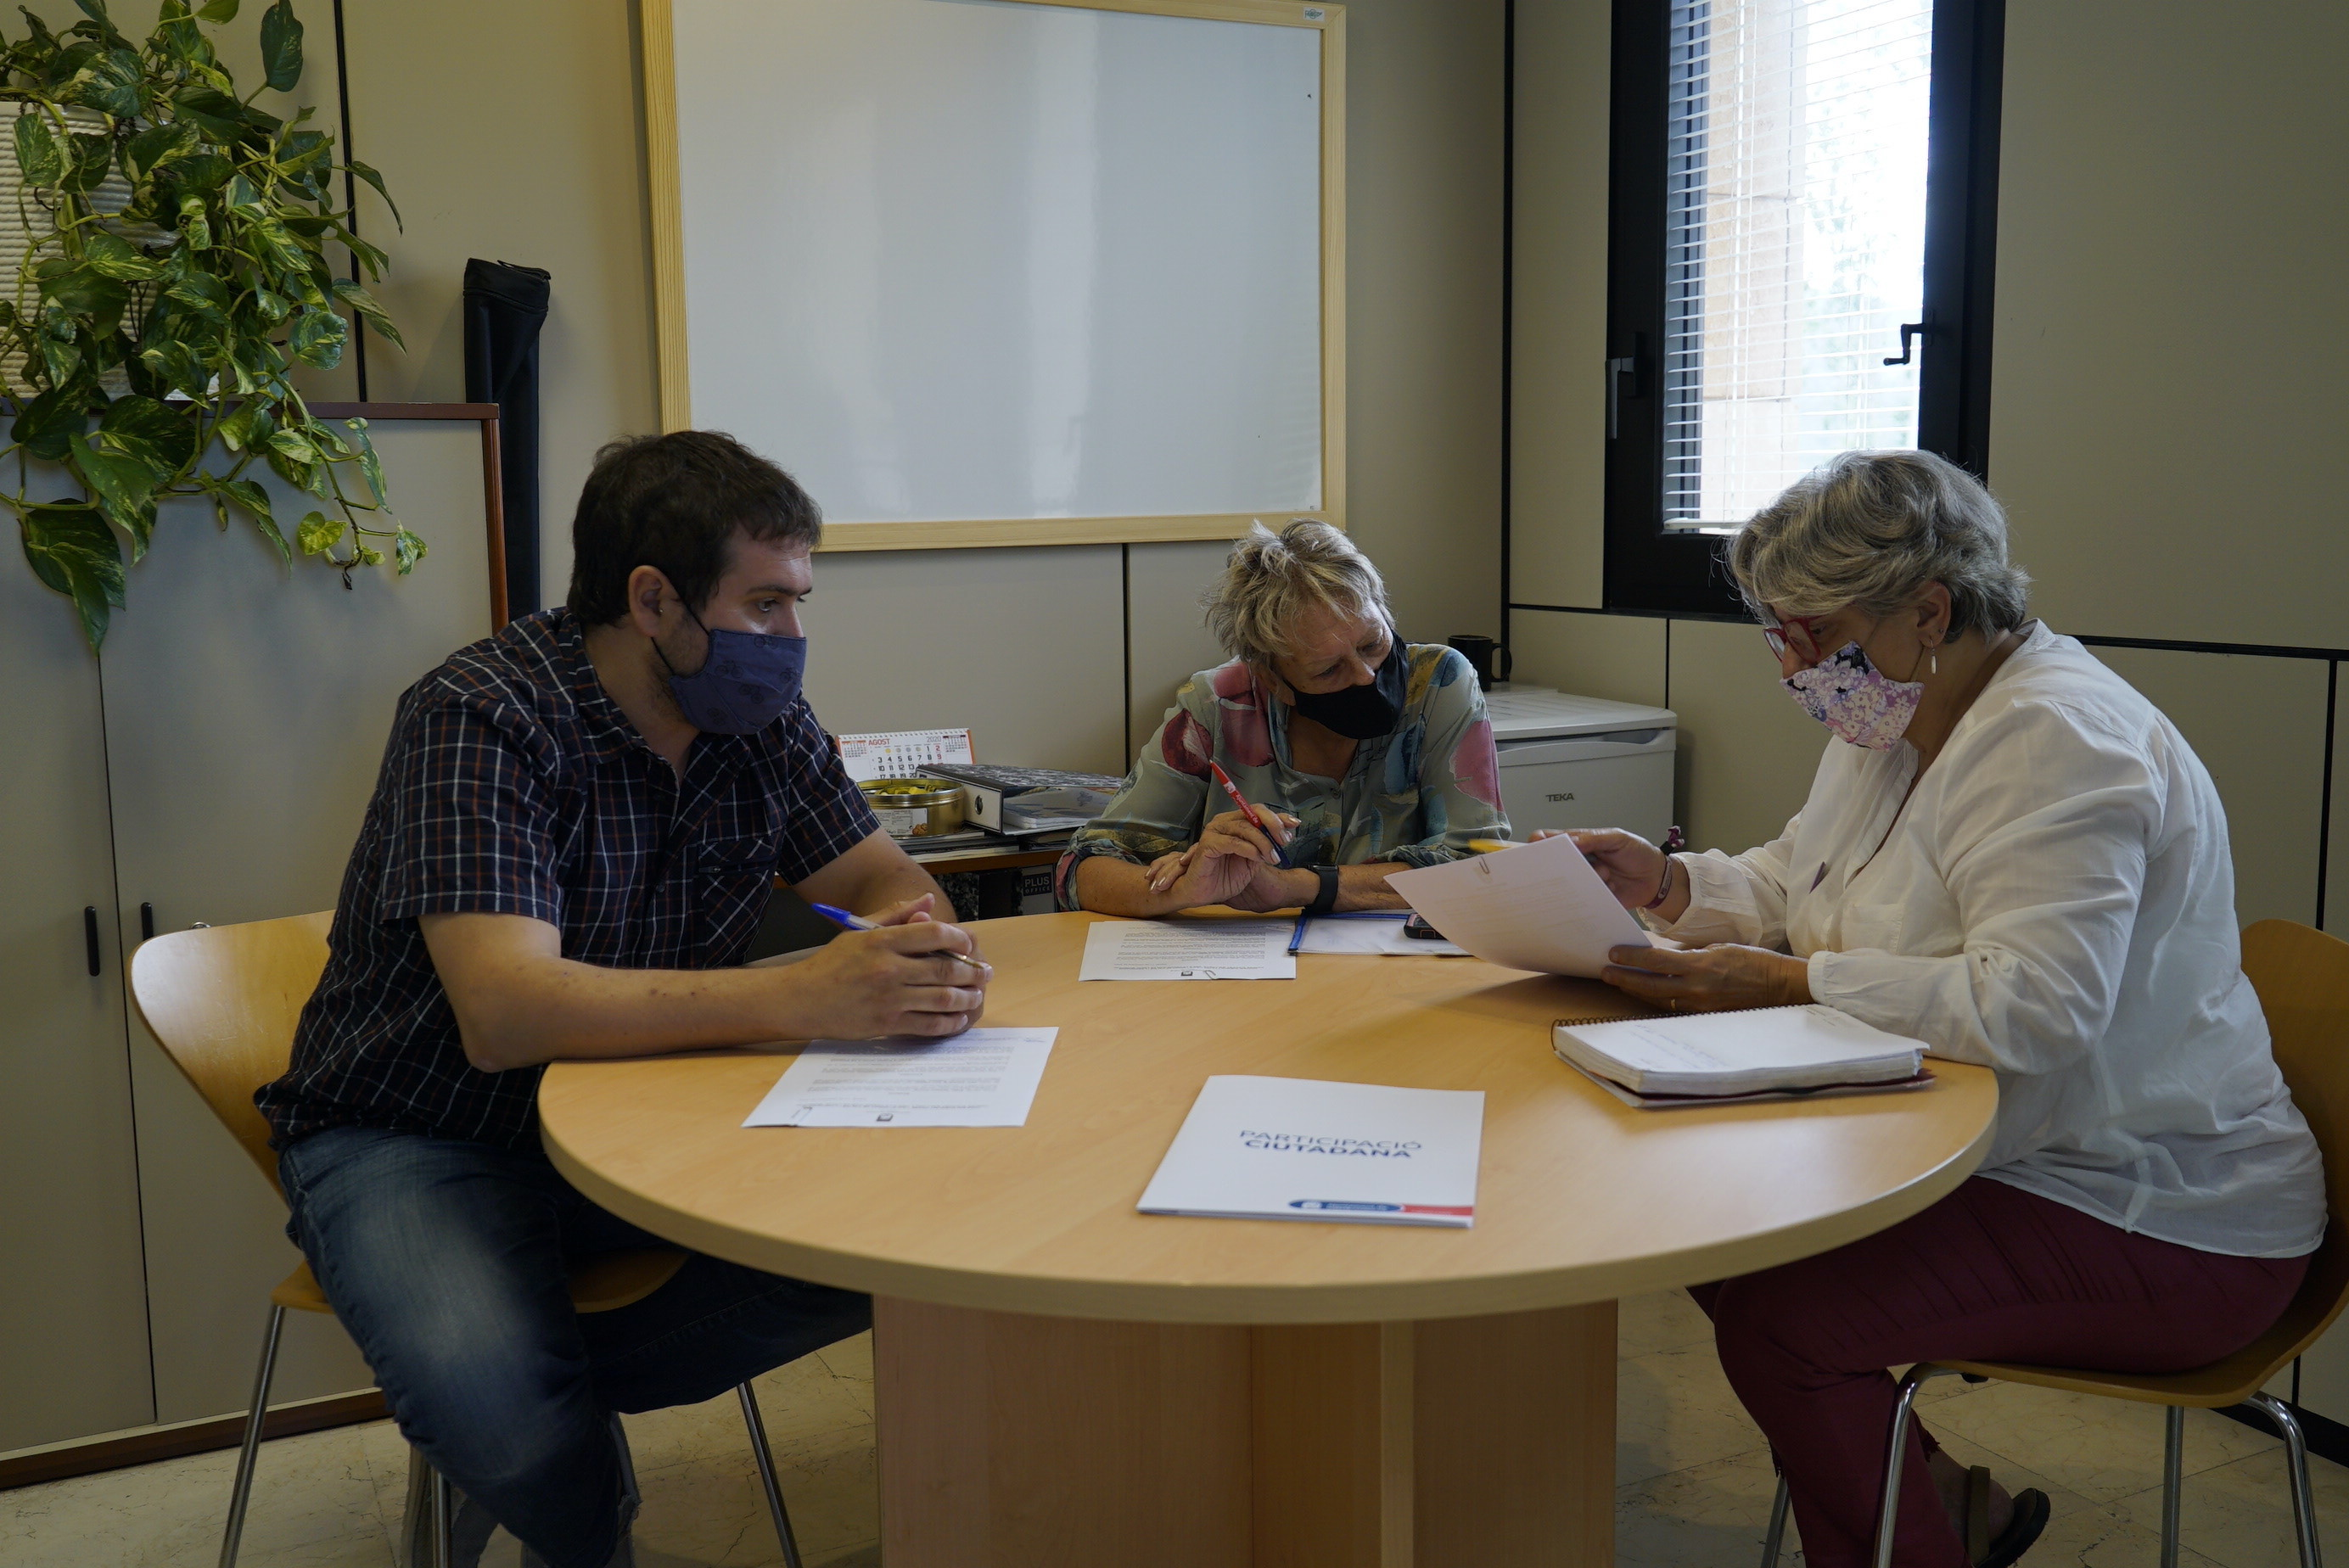 Agreement with Calvia town hall for use of centre